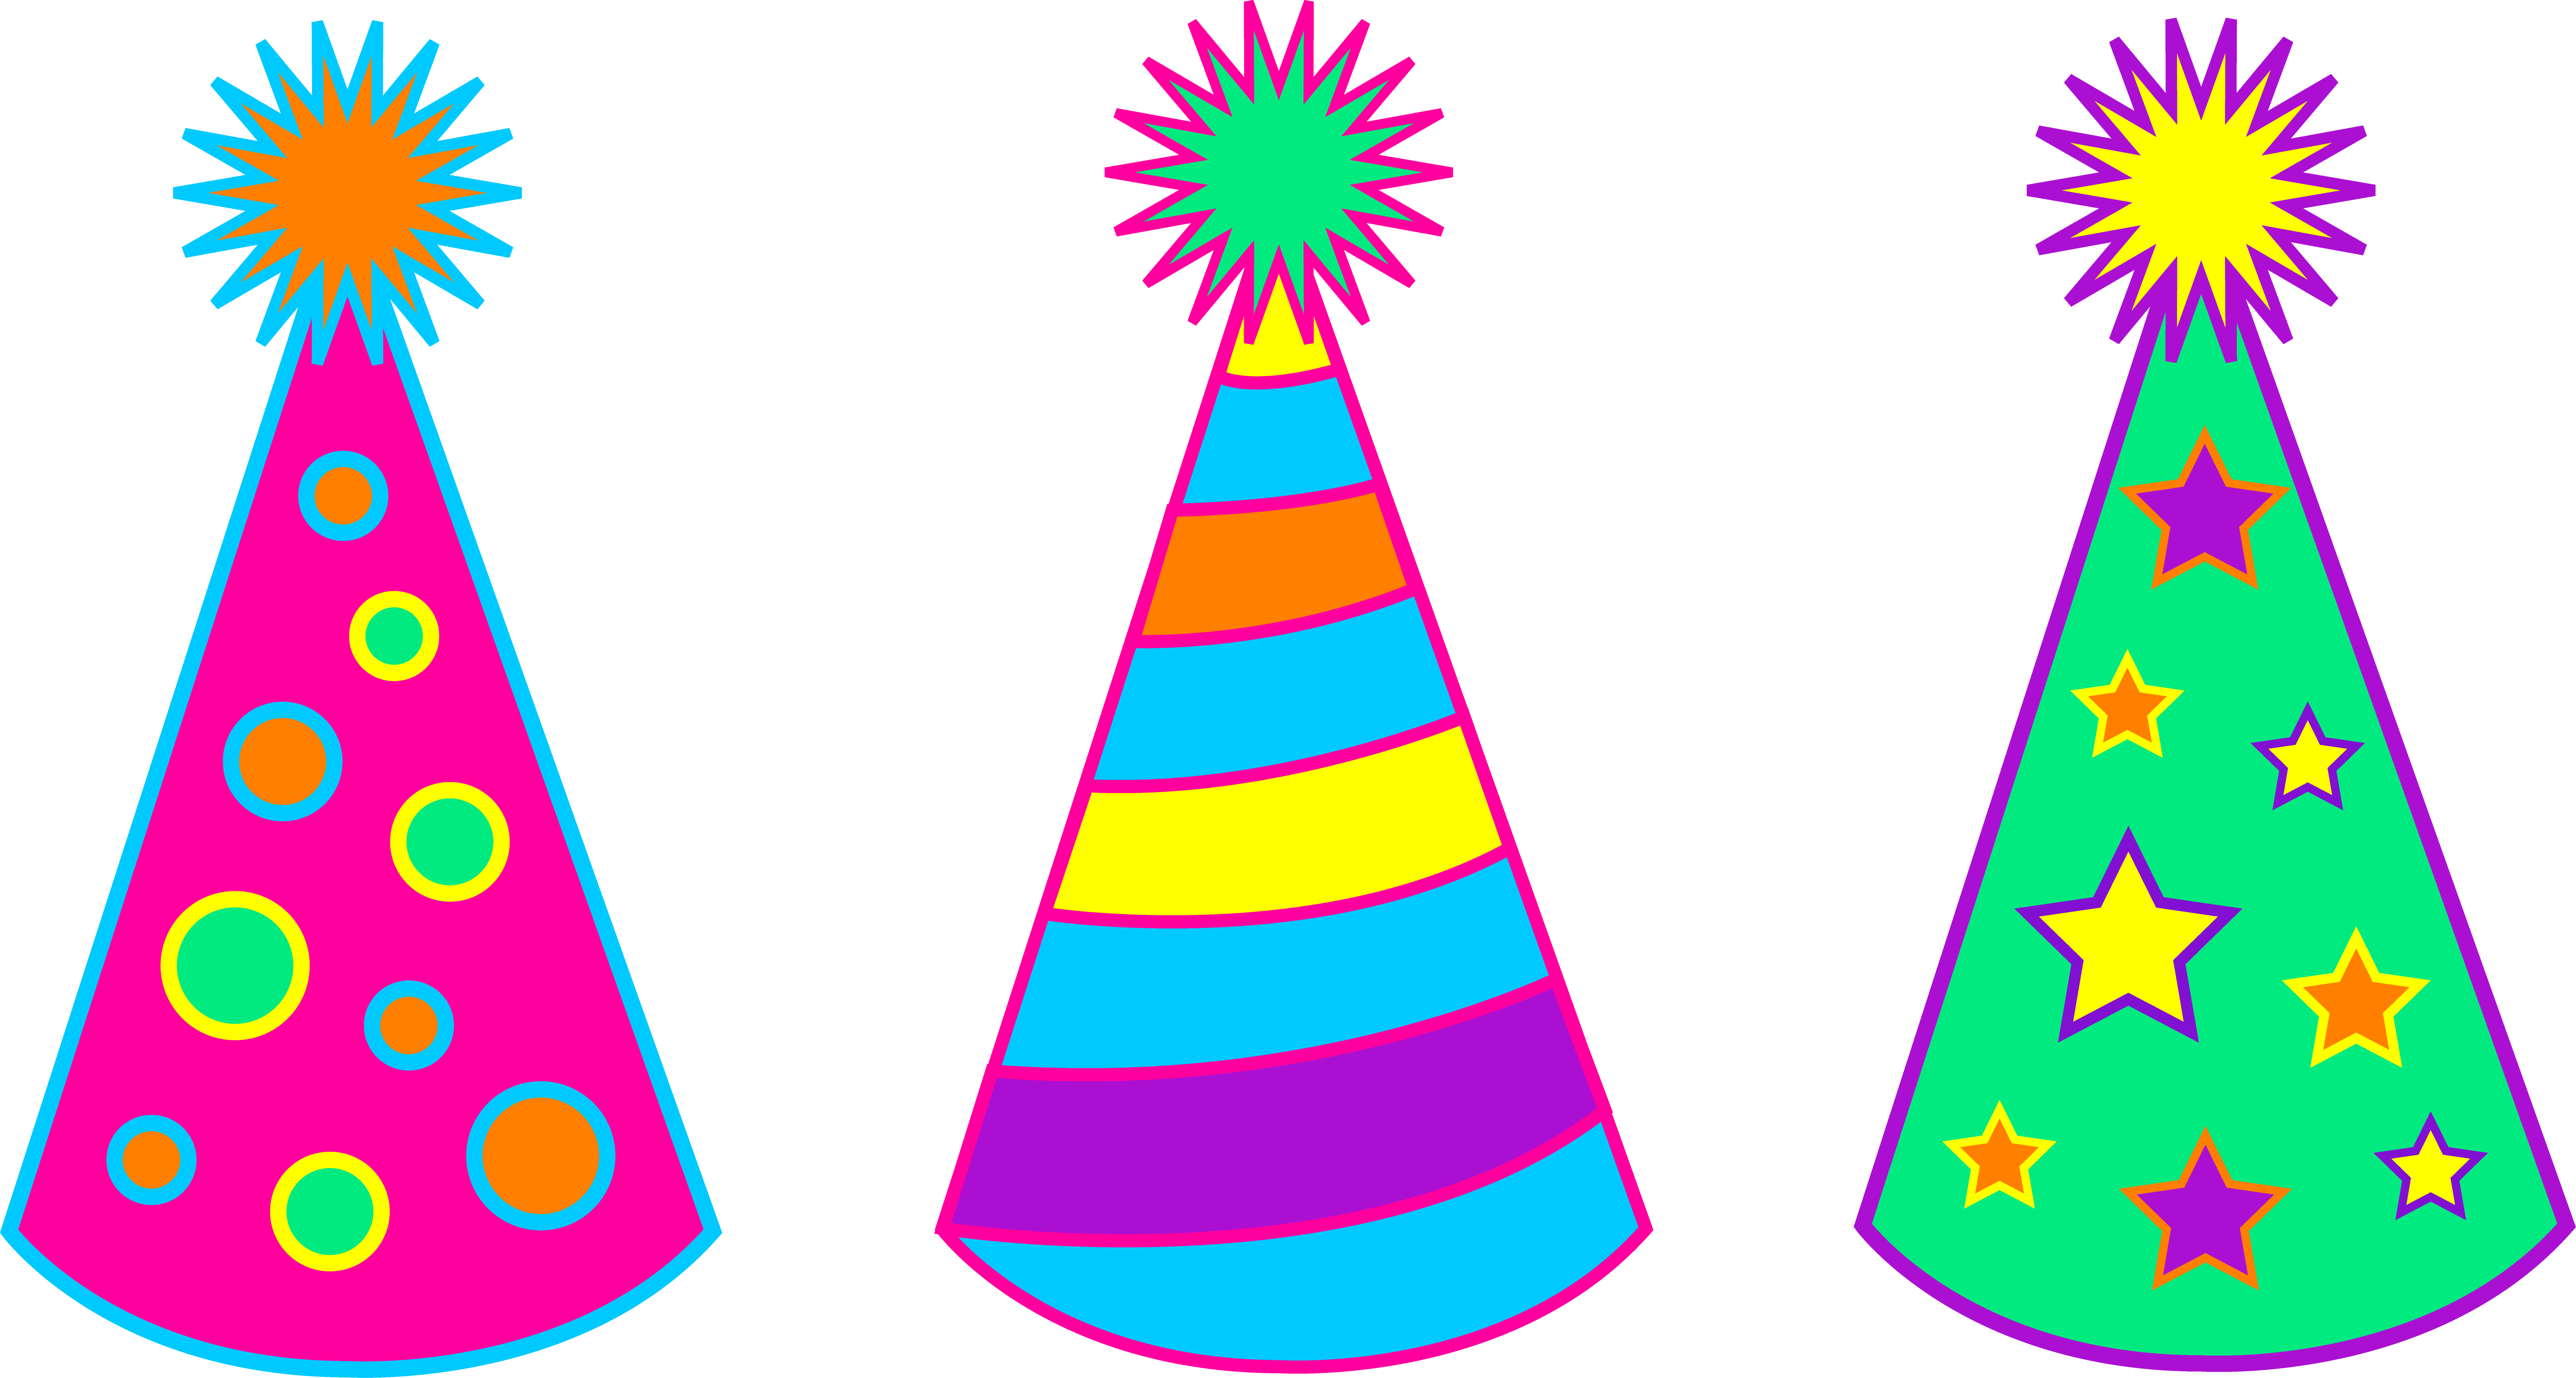 Cap clipart birthday party. Celebration pencil and in